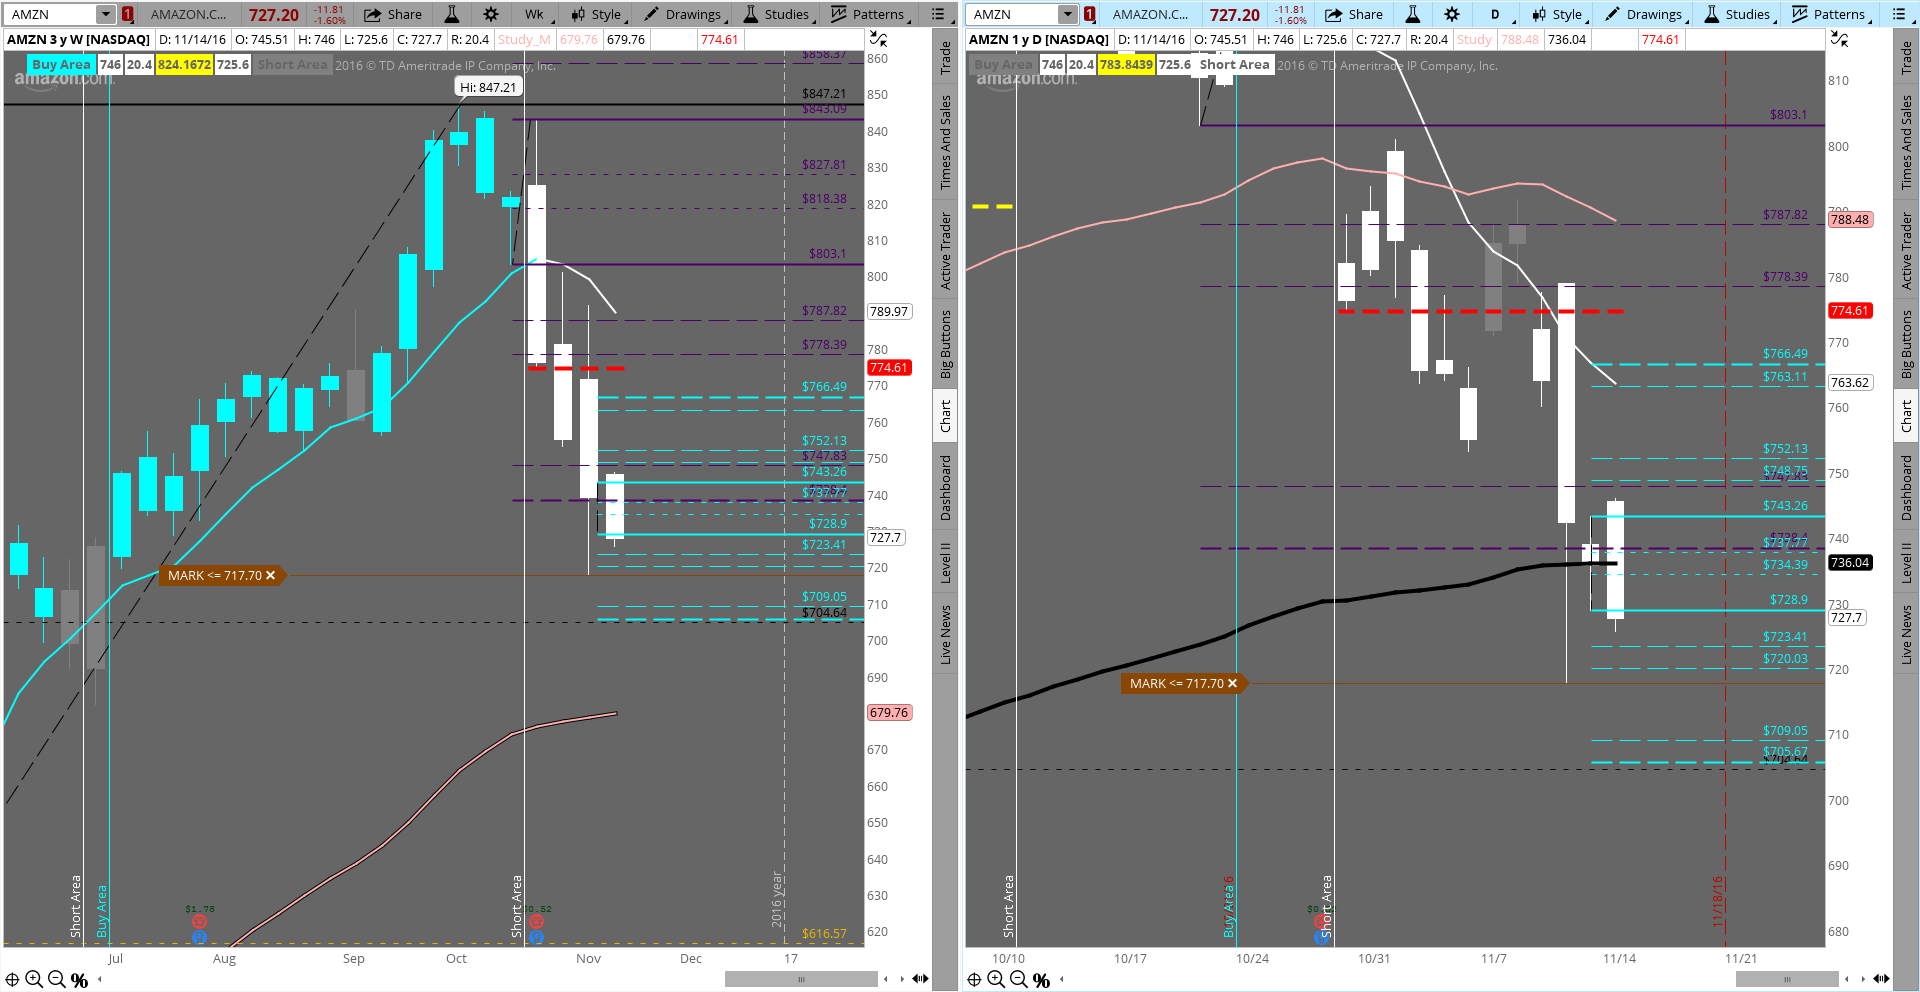 """$AMZN a short on the daily and weekly and now forming a """"Bearish Engulfing"""" candle. 717.7 and even 704.64 in play now. $QQQ $NQ_F"""